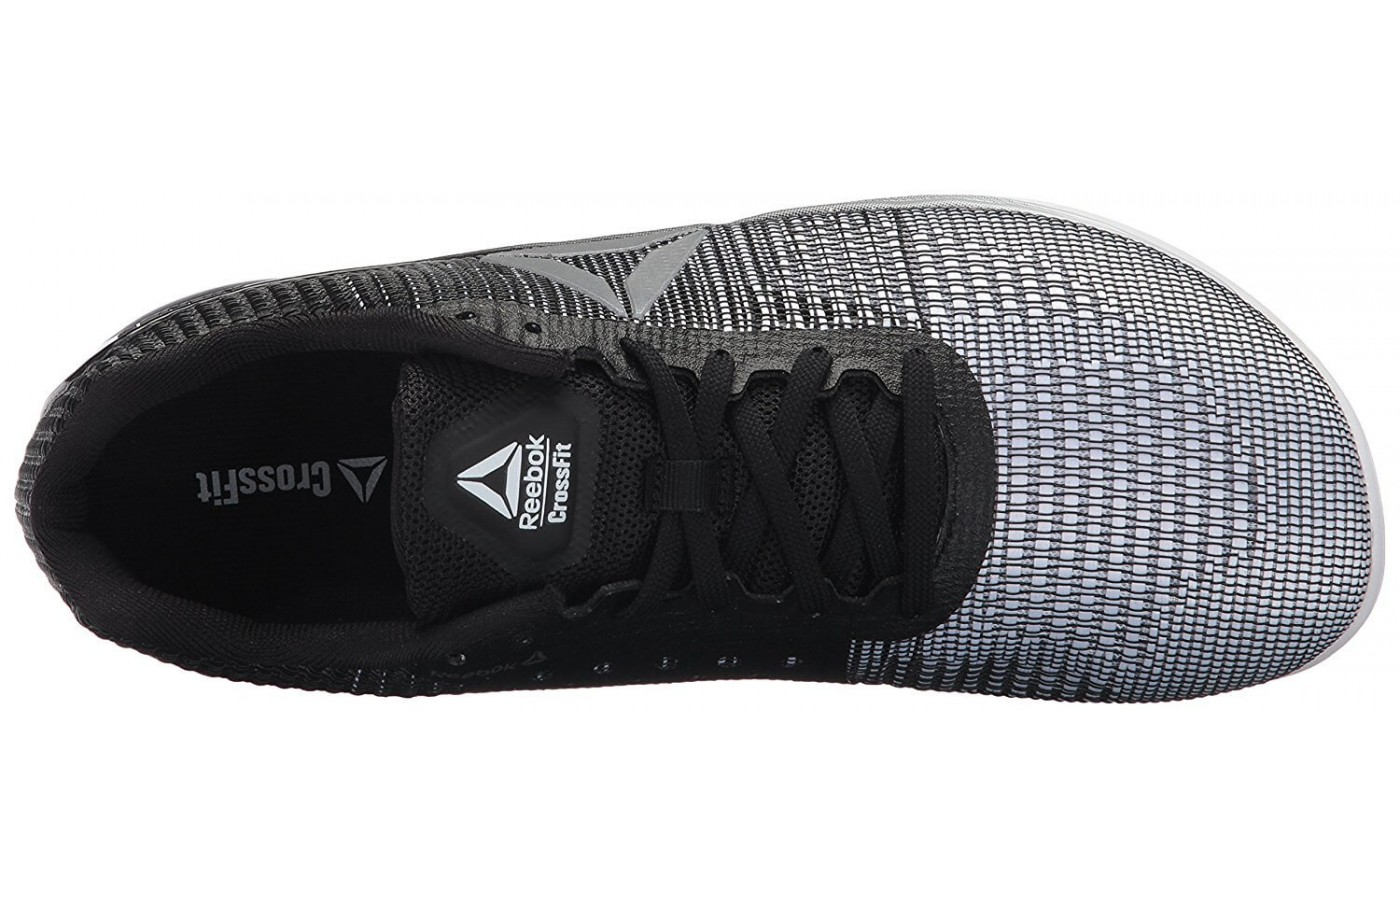 The Reebok Crossfit Nano 7 Weave's upper is made from similar material to Nike's Flyknit footwear.